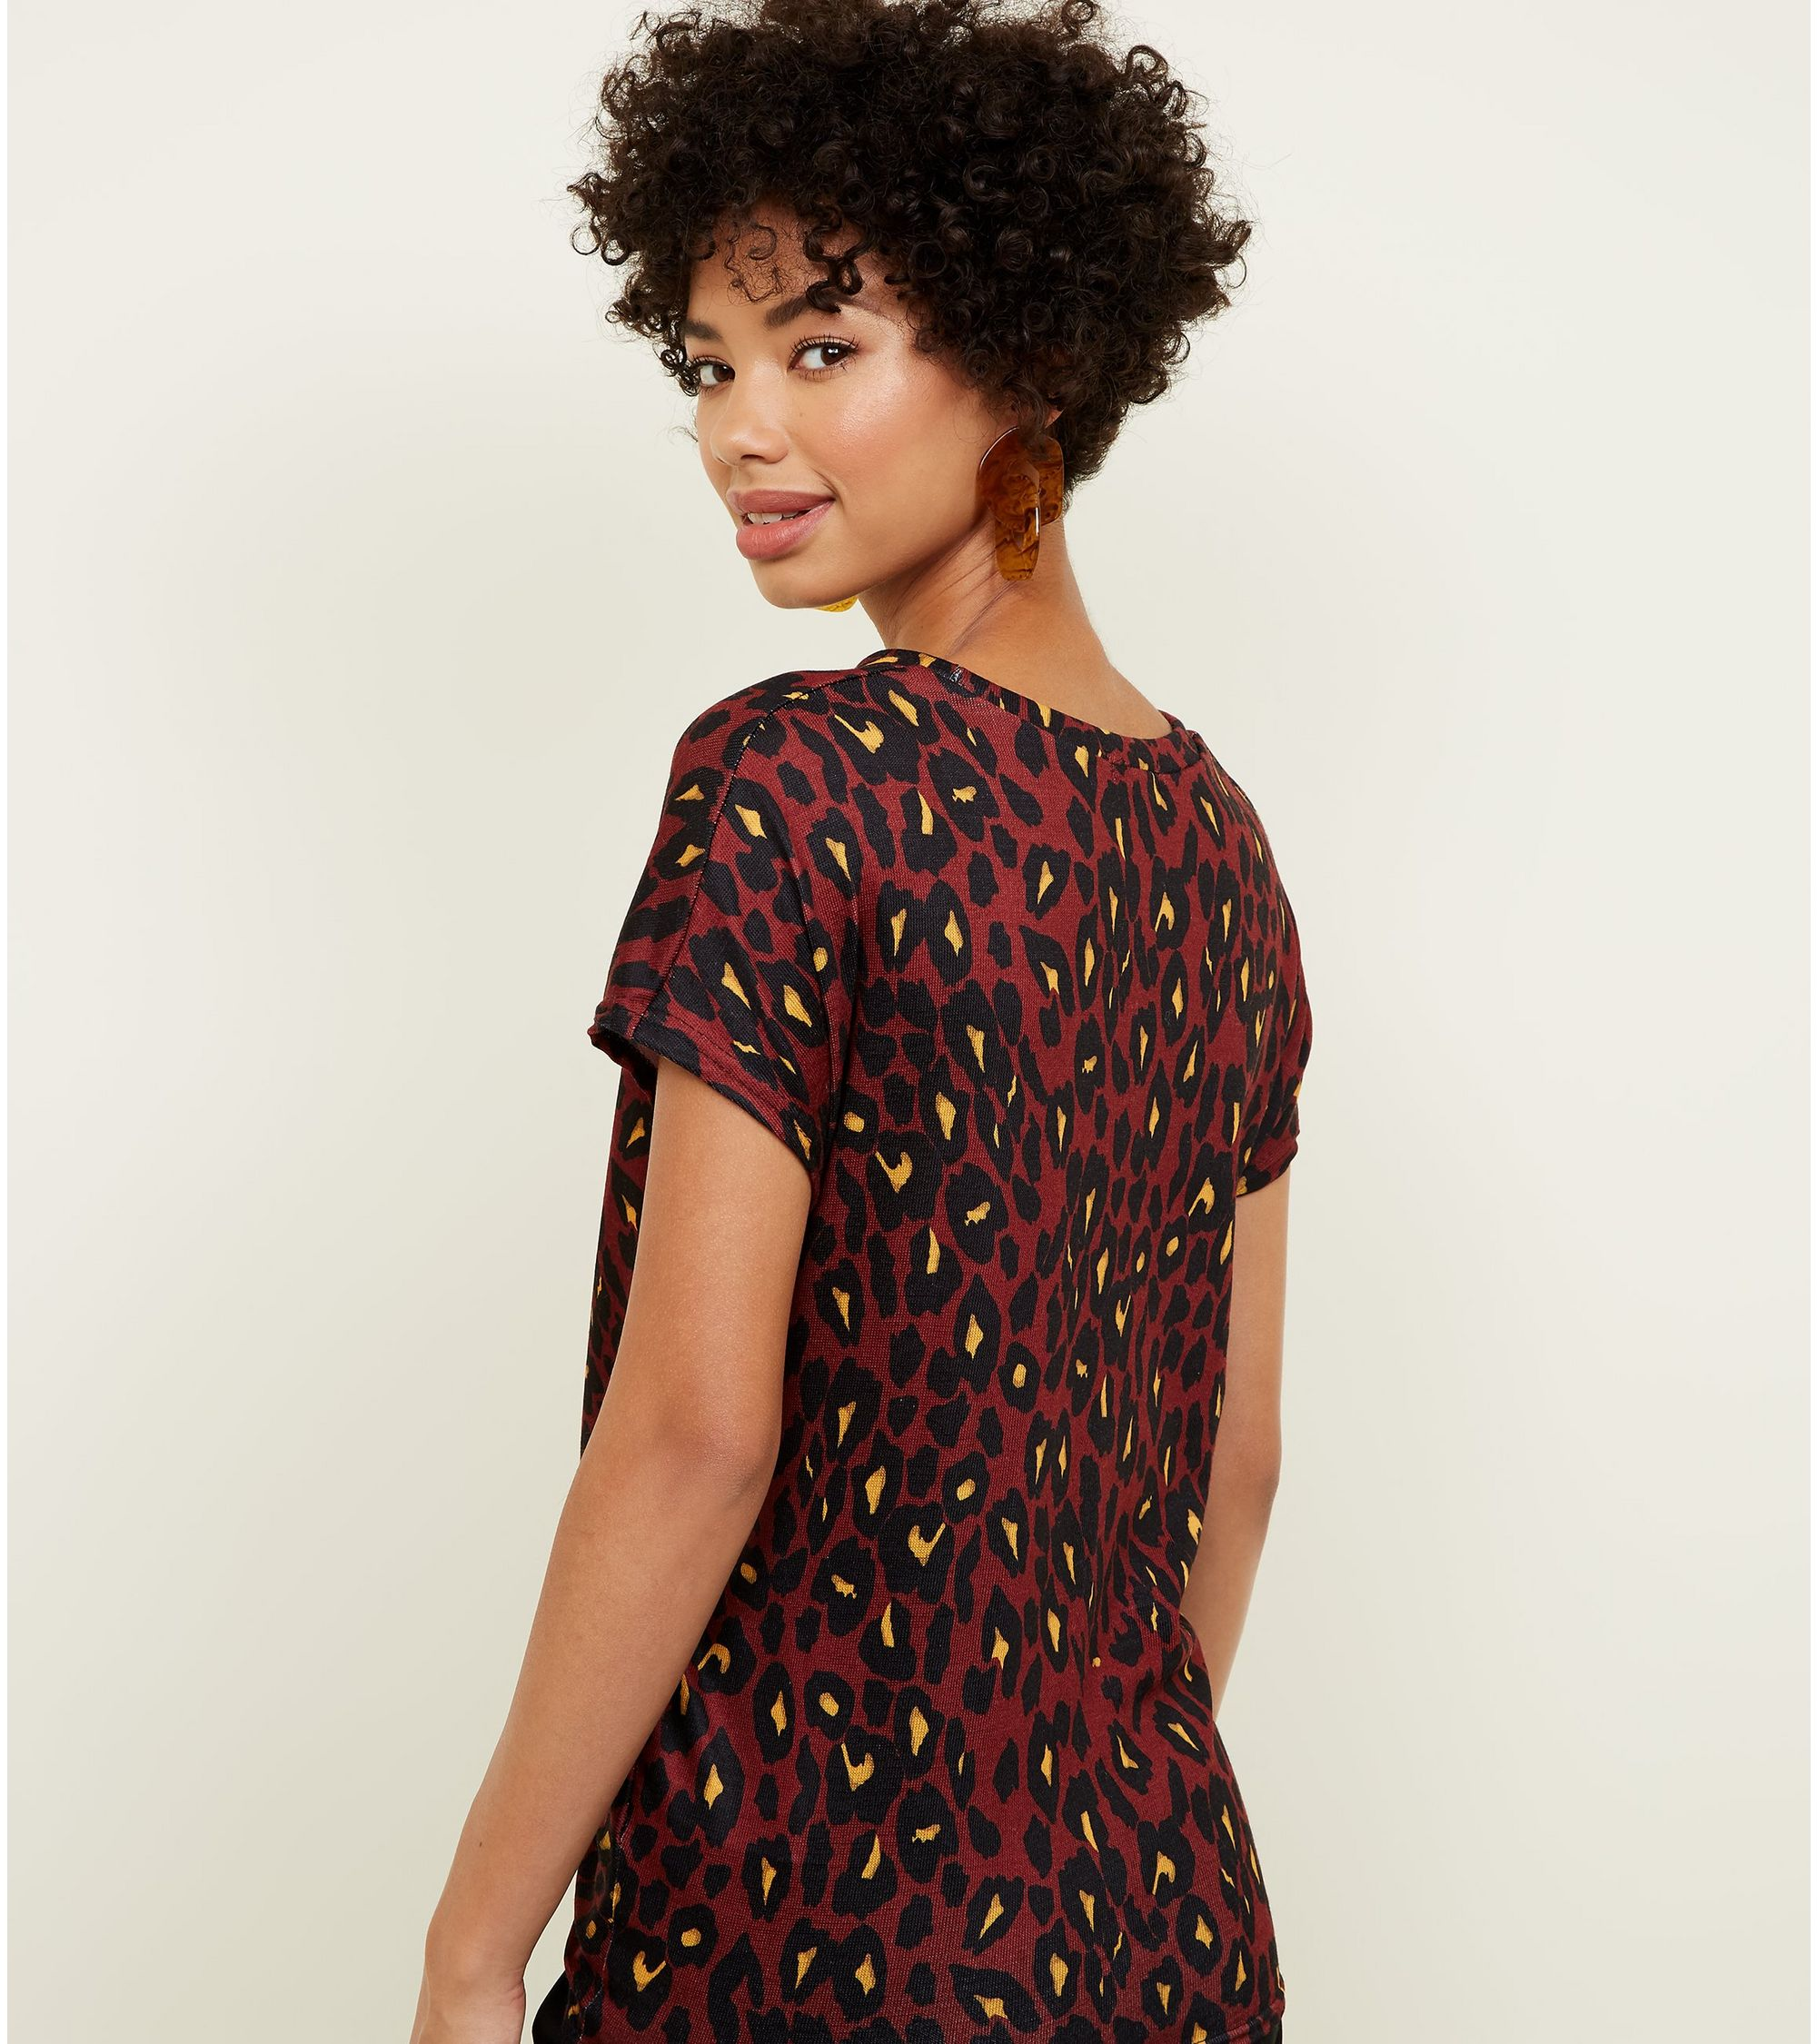 89f0203d96c5 New Look Burgundy Leopard Print Twist Front Top at £6 | love the brands